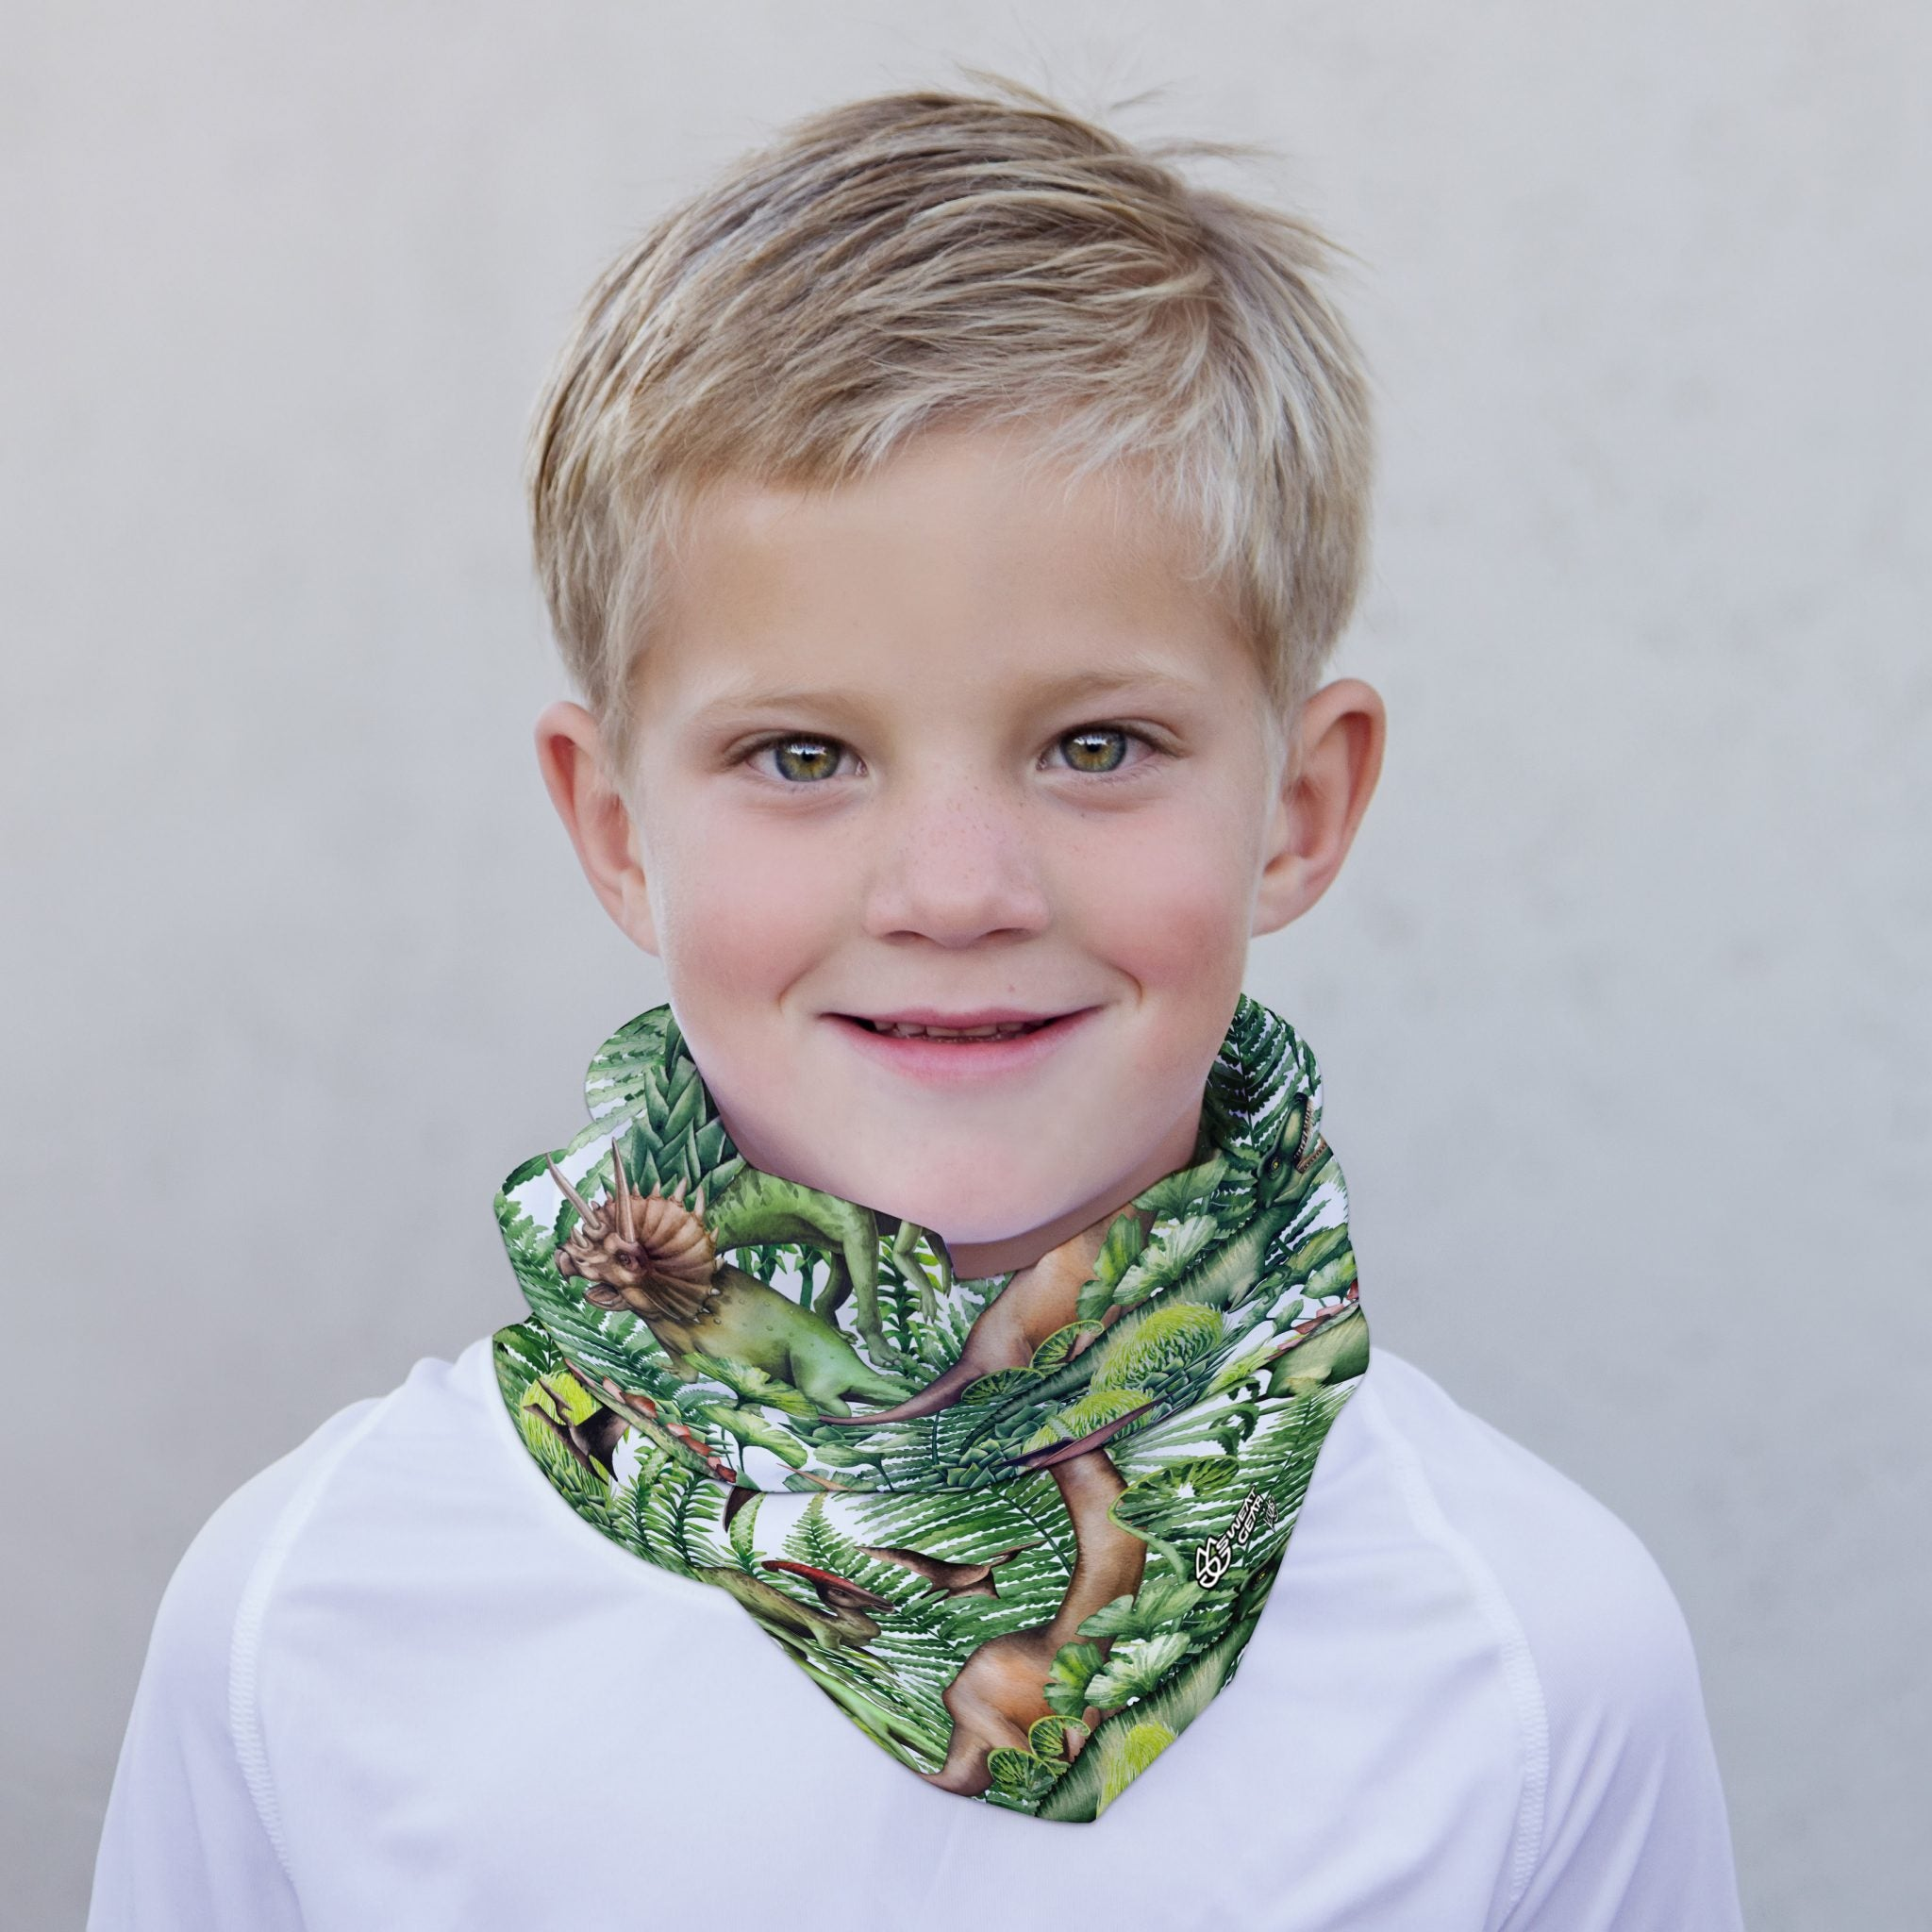 Junglesaurus Buff (Sweatgear.Kids)